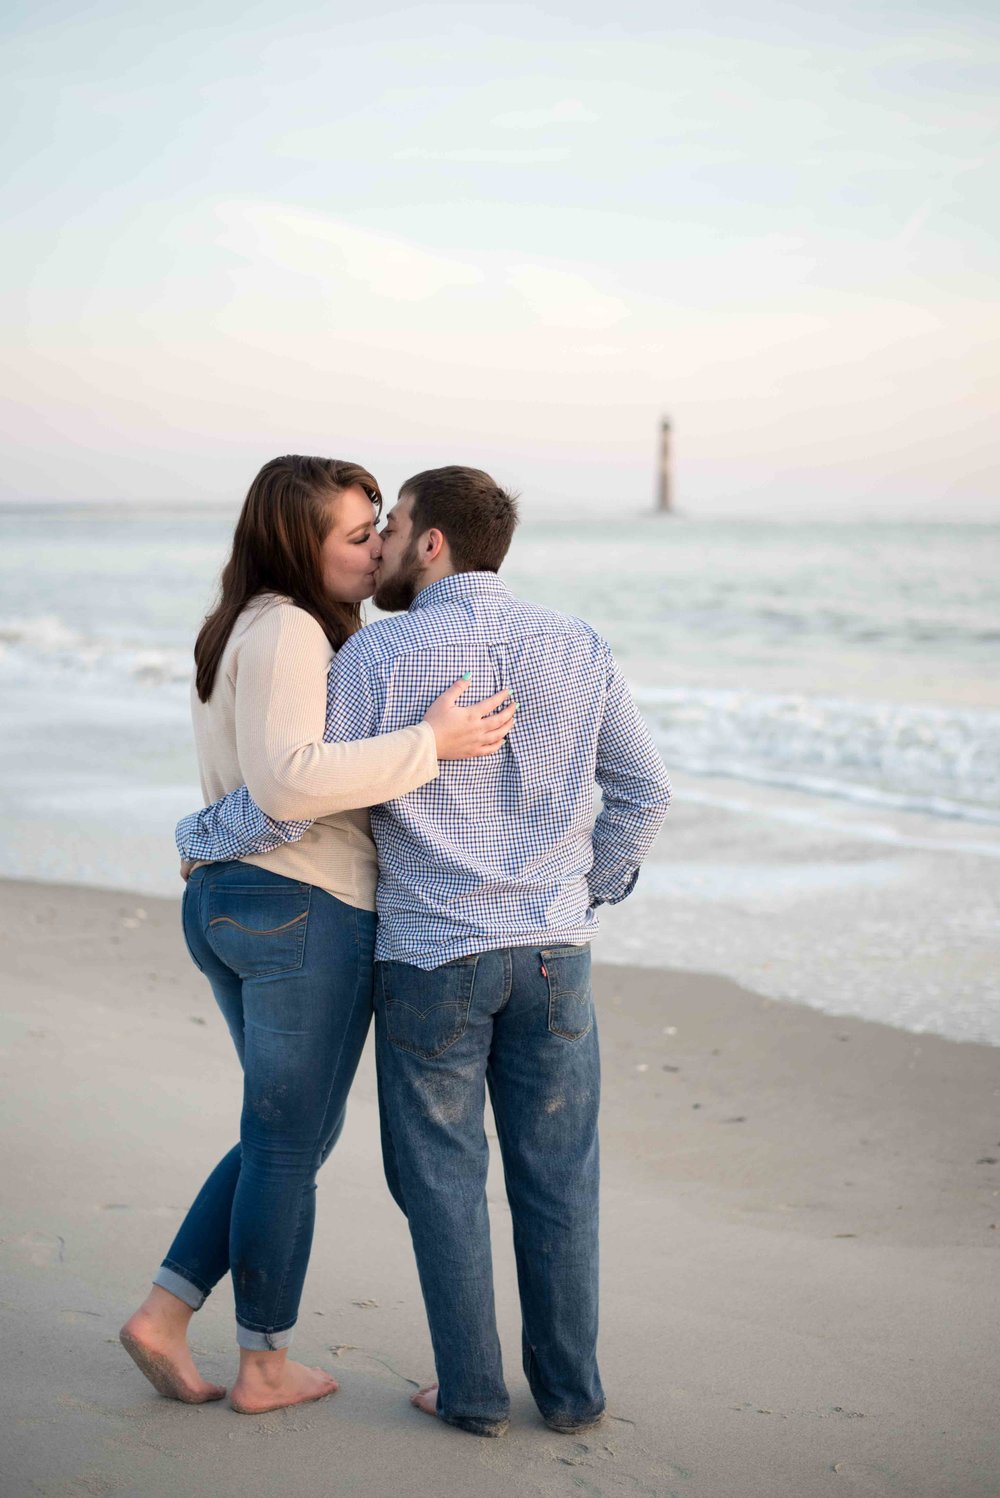 Lindsey Leigh Weddings at Folly Beach in Charleston, South Carolina for Magen and John's winter engagement